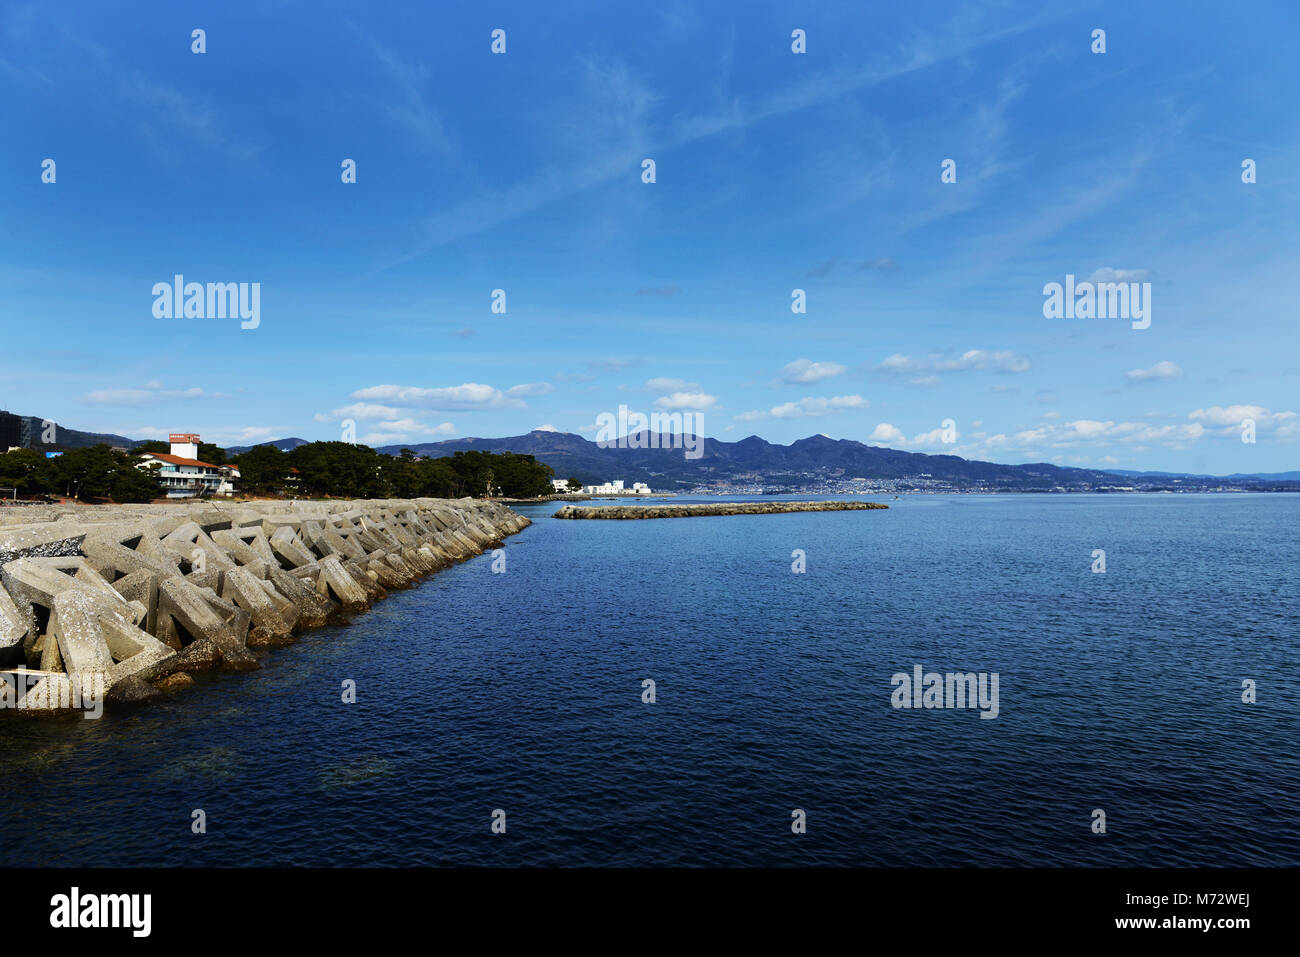 A scenic coastline view in Beppu, Japan. - Stock Image